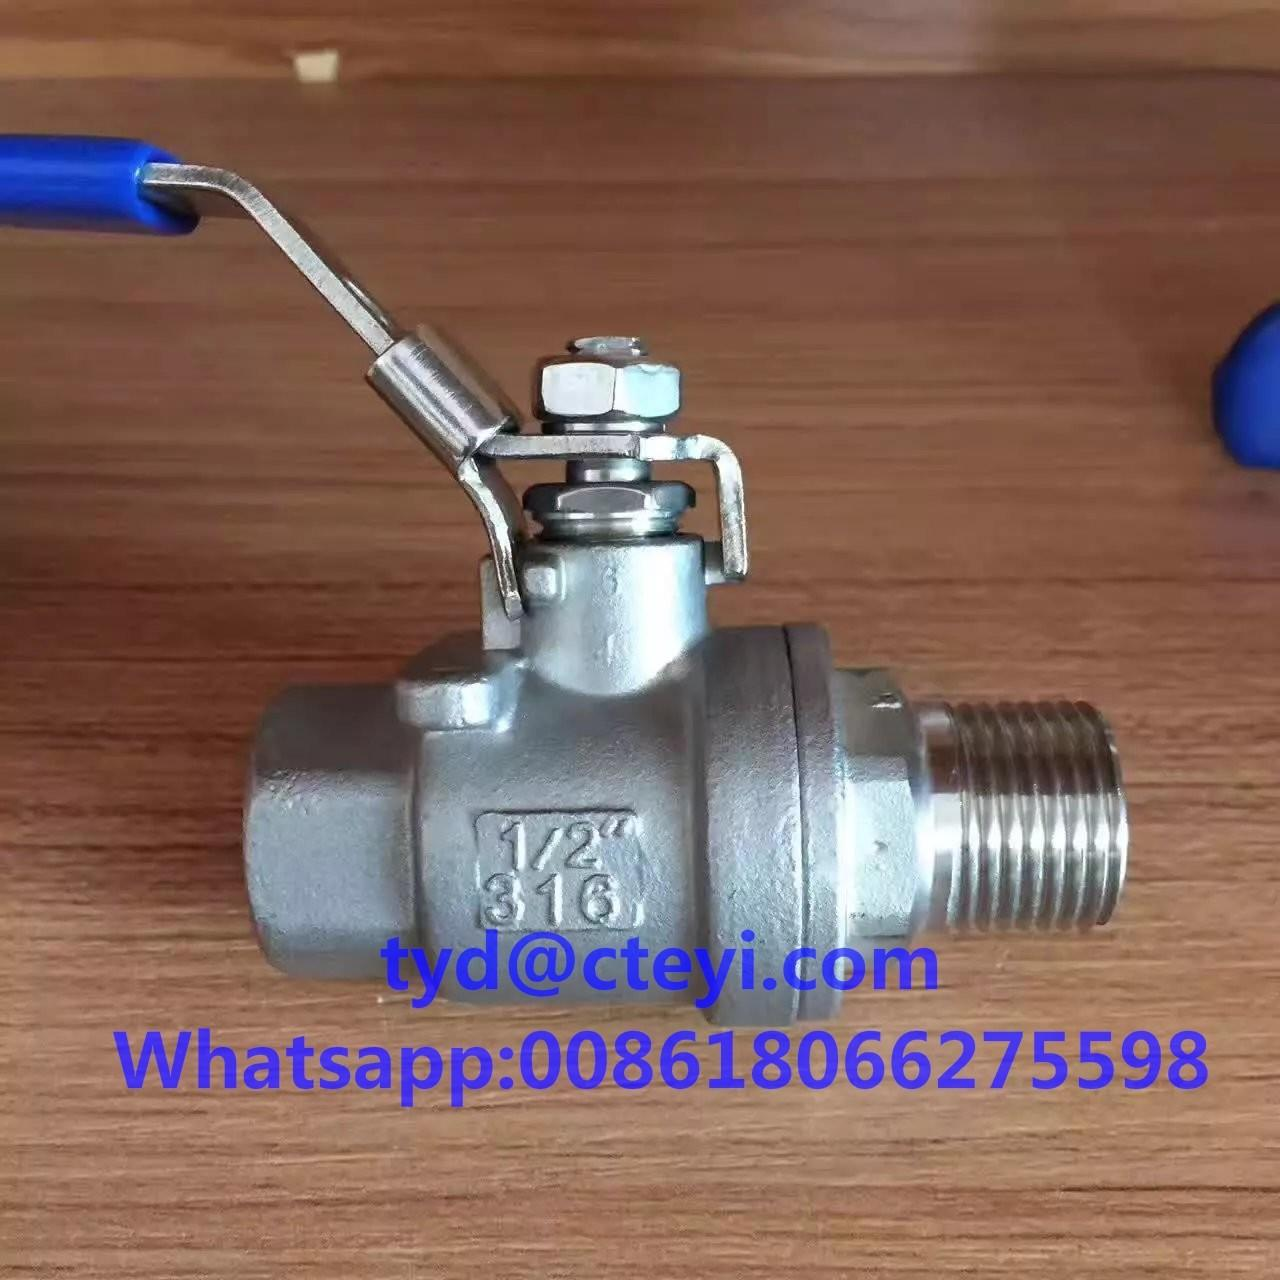 Wholesale 1000WOG 316 Stainless Steel Ball Valves , Full Port Male Female NPT Thread 2pc Ball Valve from china suppliers